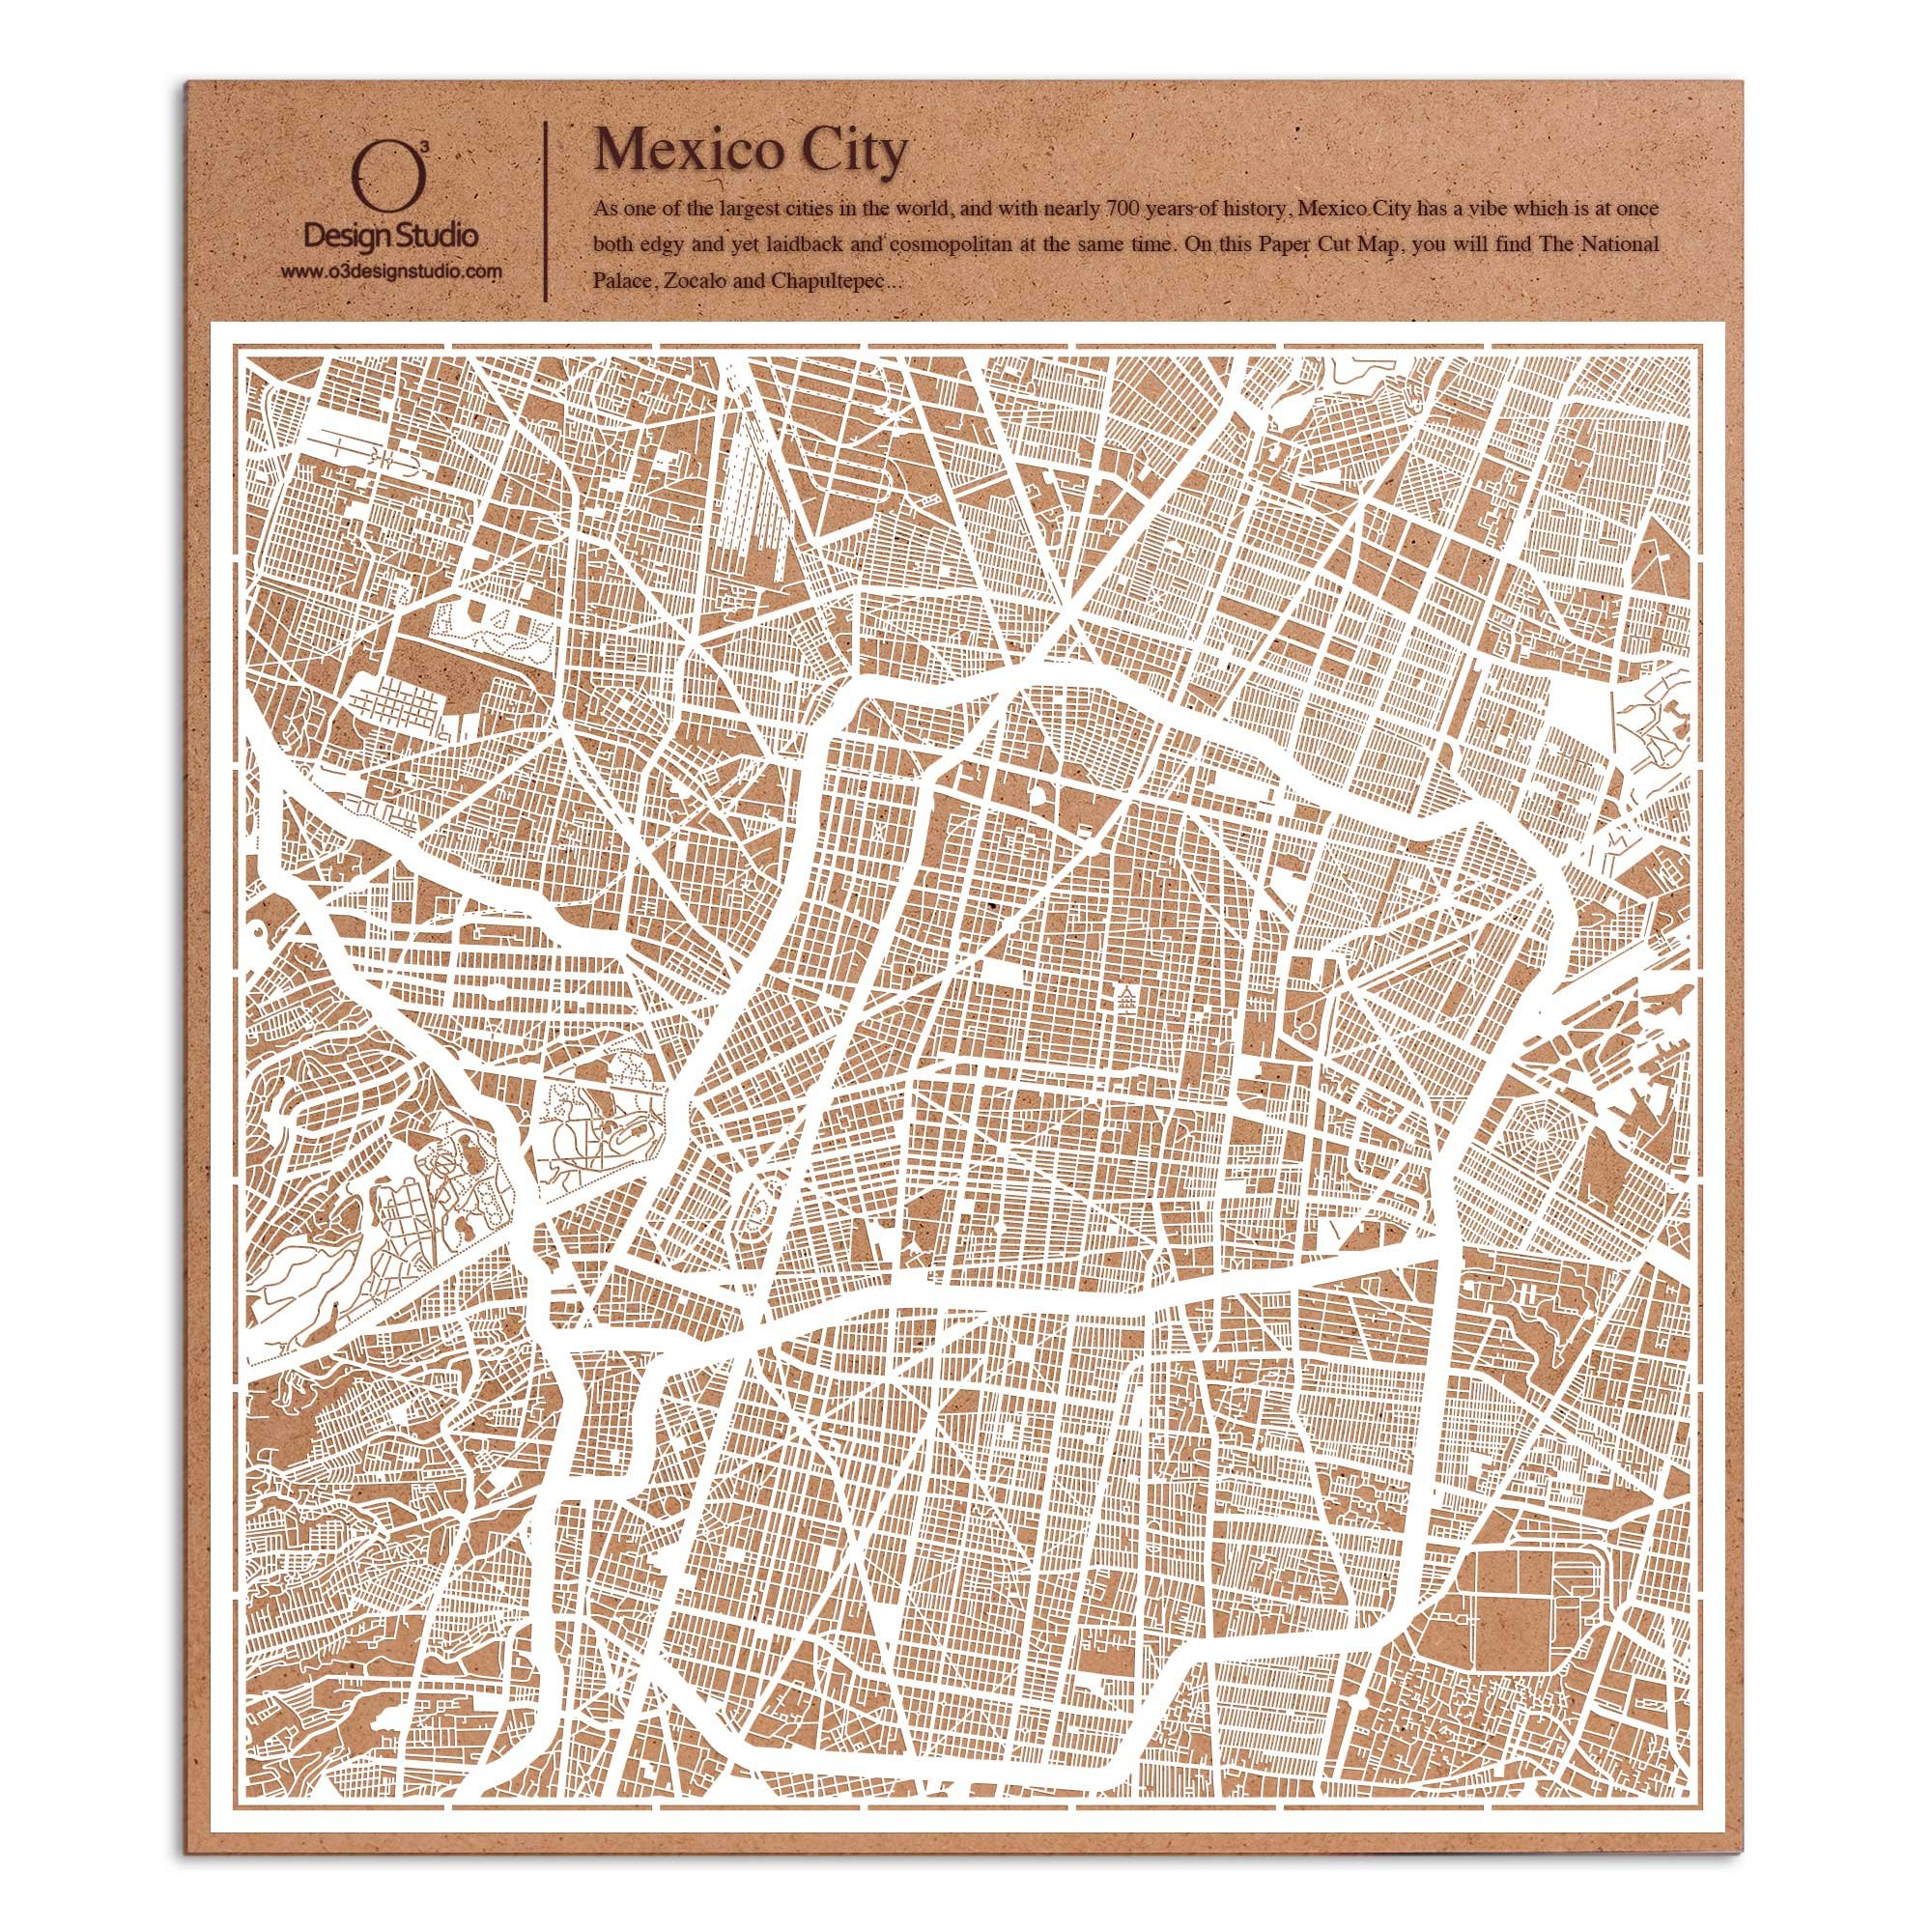 Mexico City Paper Cut Map by O3 Design Studio White 12x12 inches Paper Art